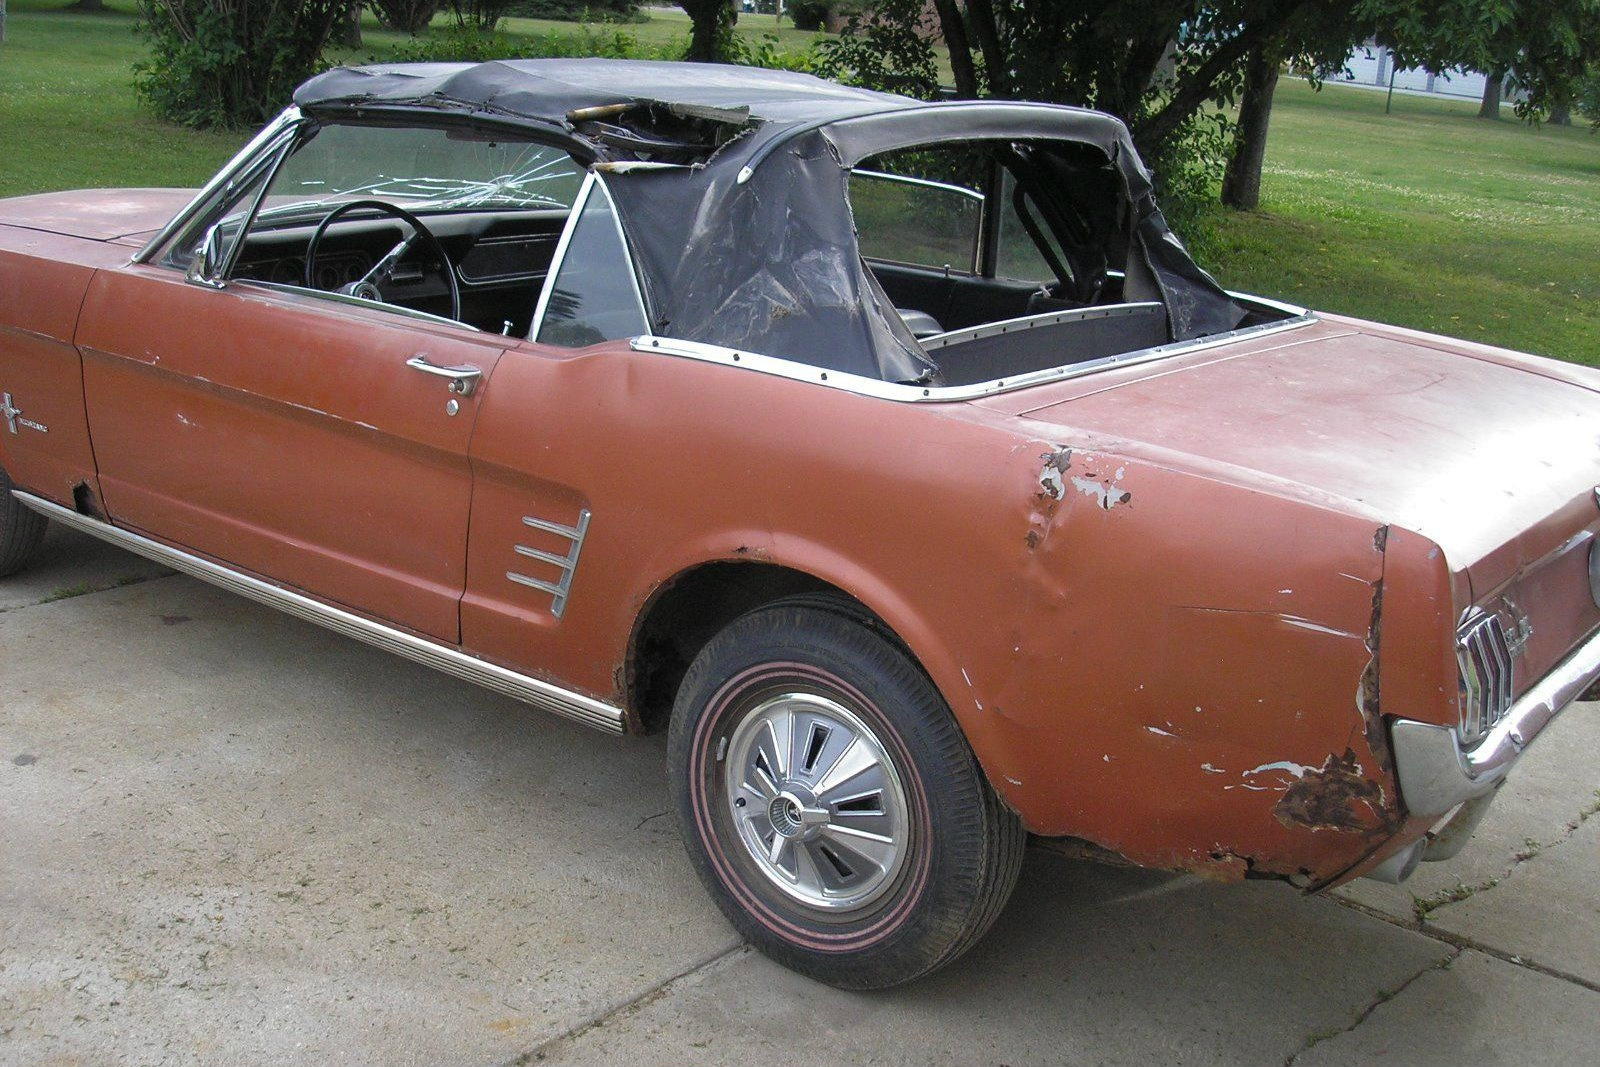 Two Sided Pony: 1966 Mustang Convertible